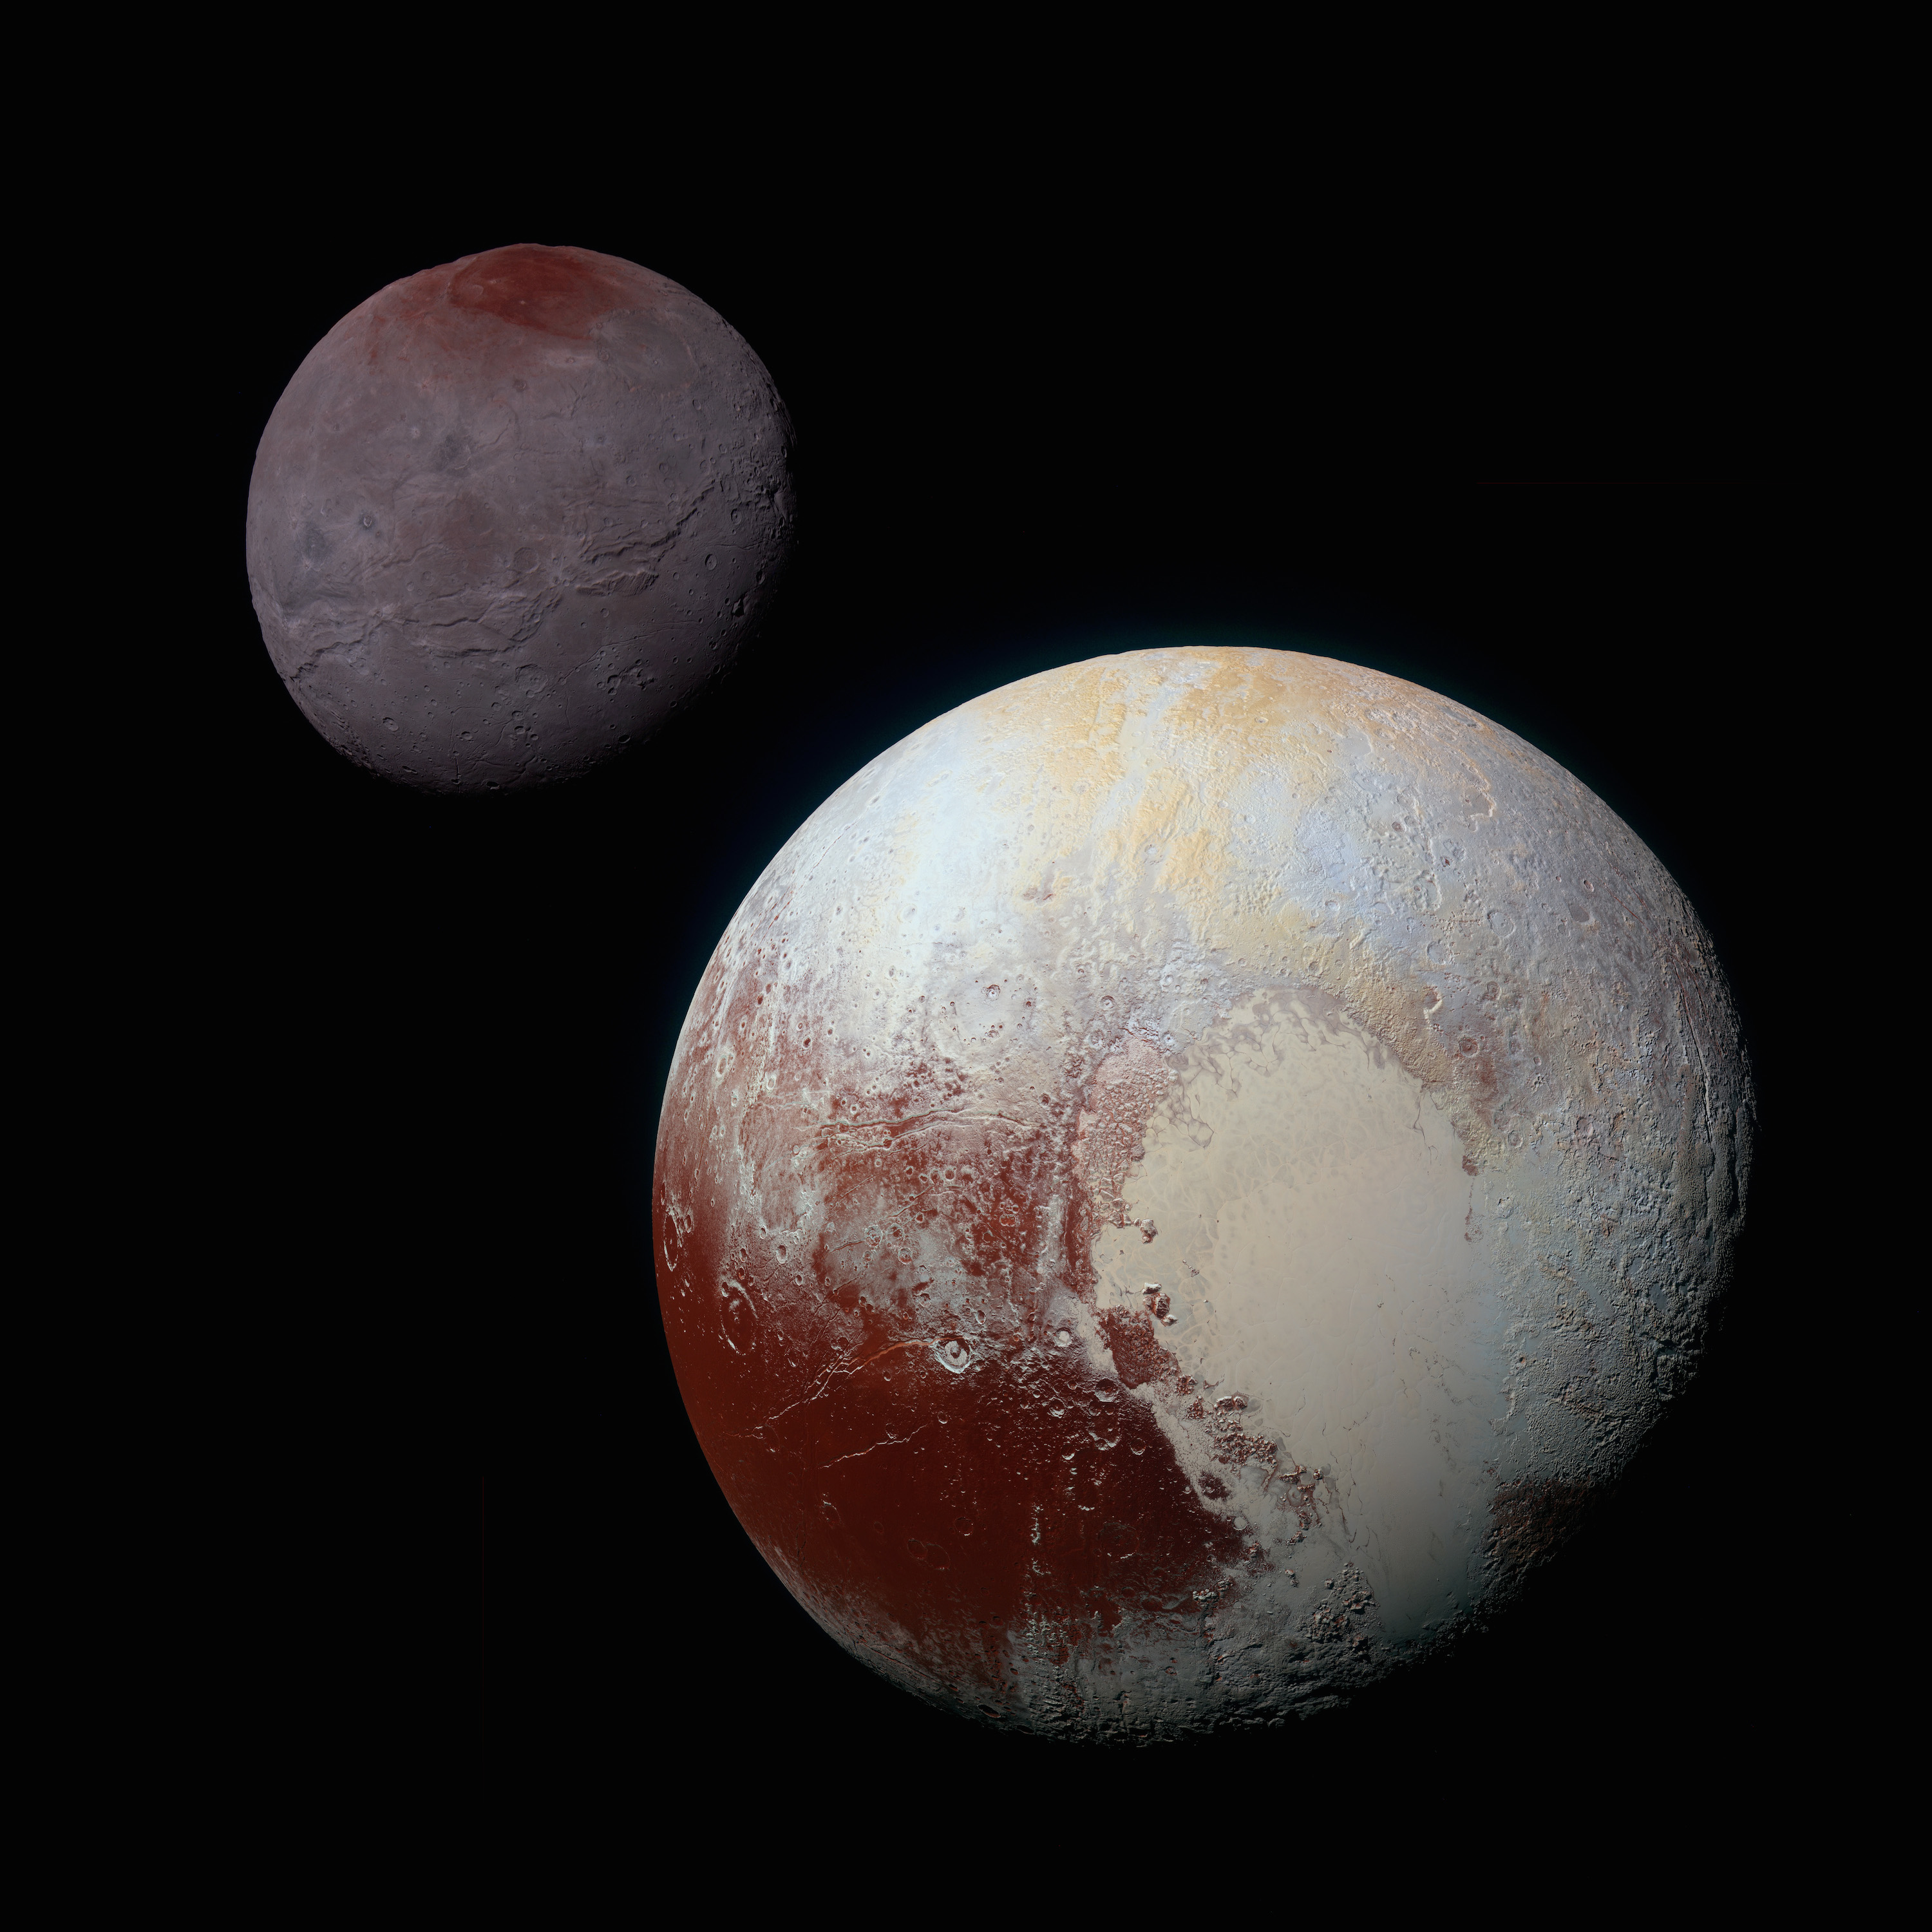 nasa images of pluto - photo #3